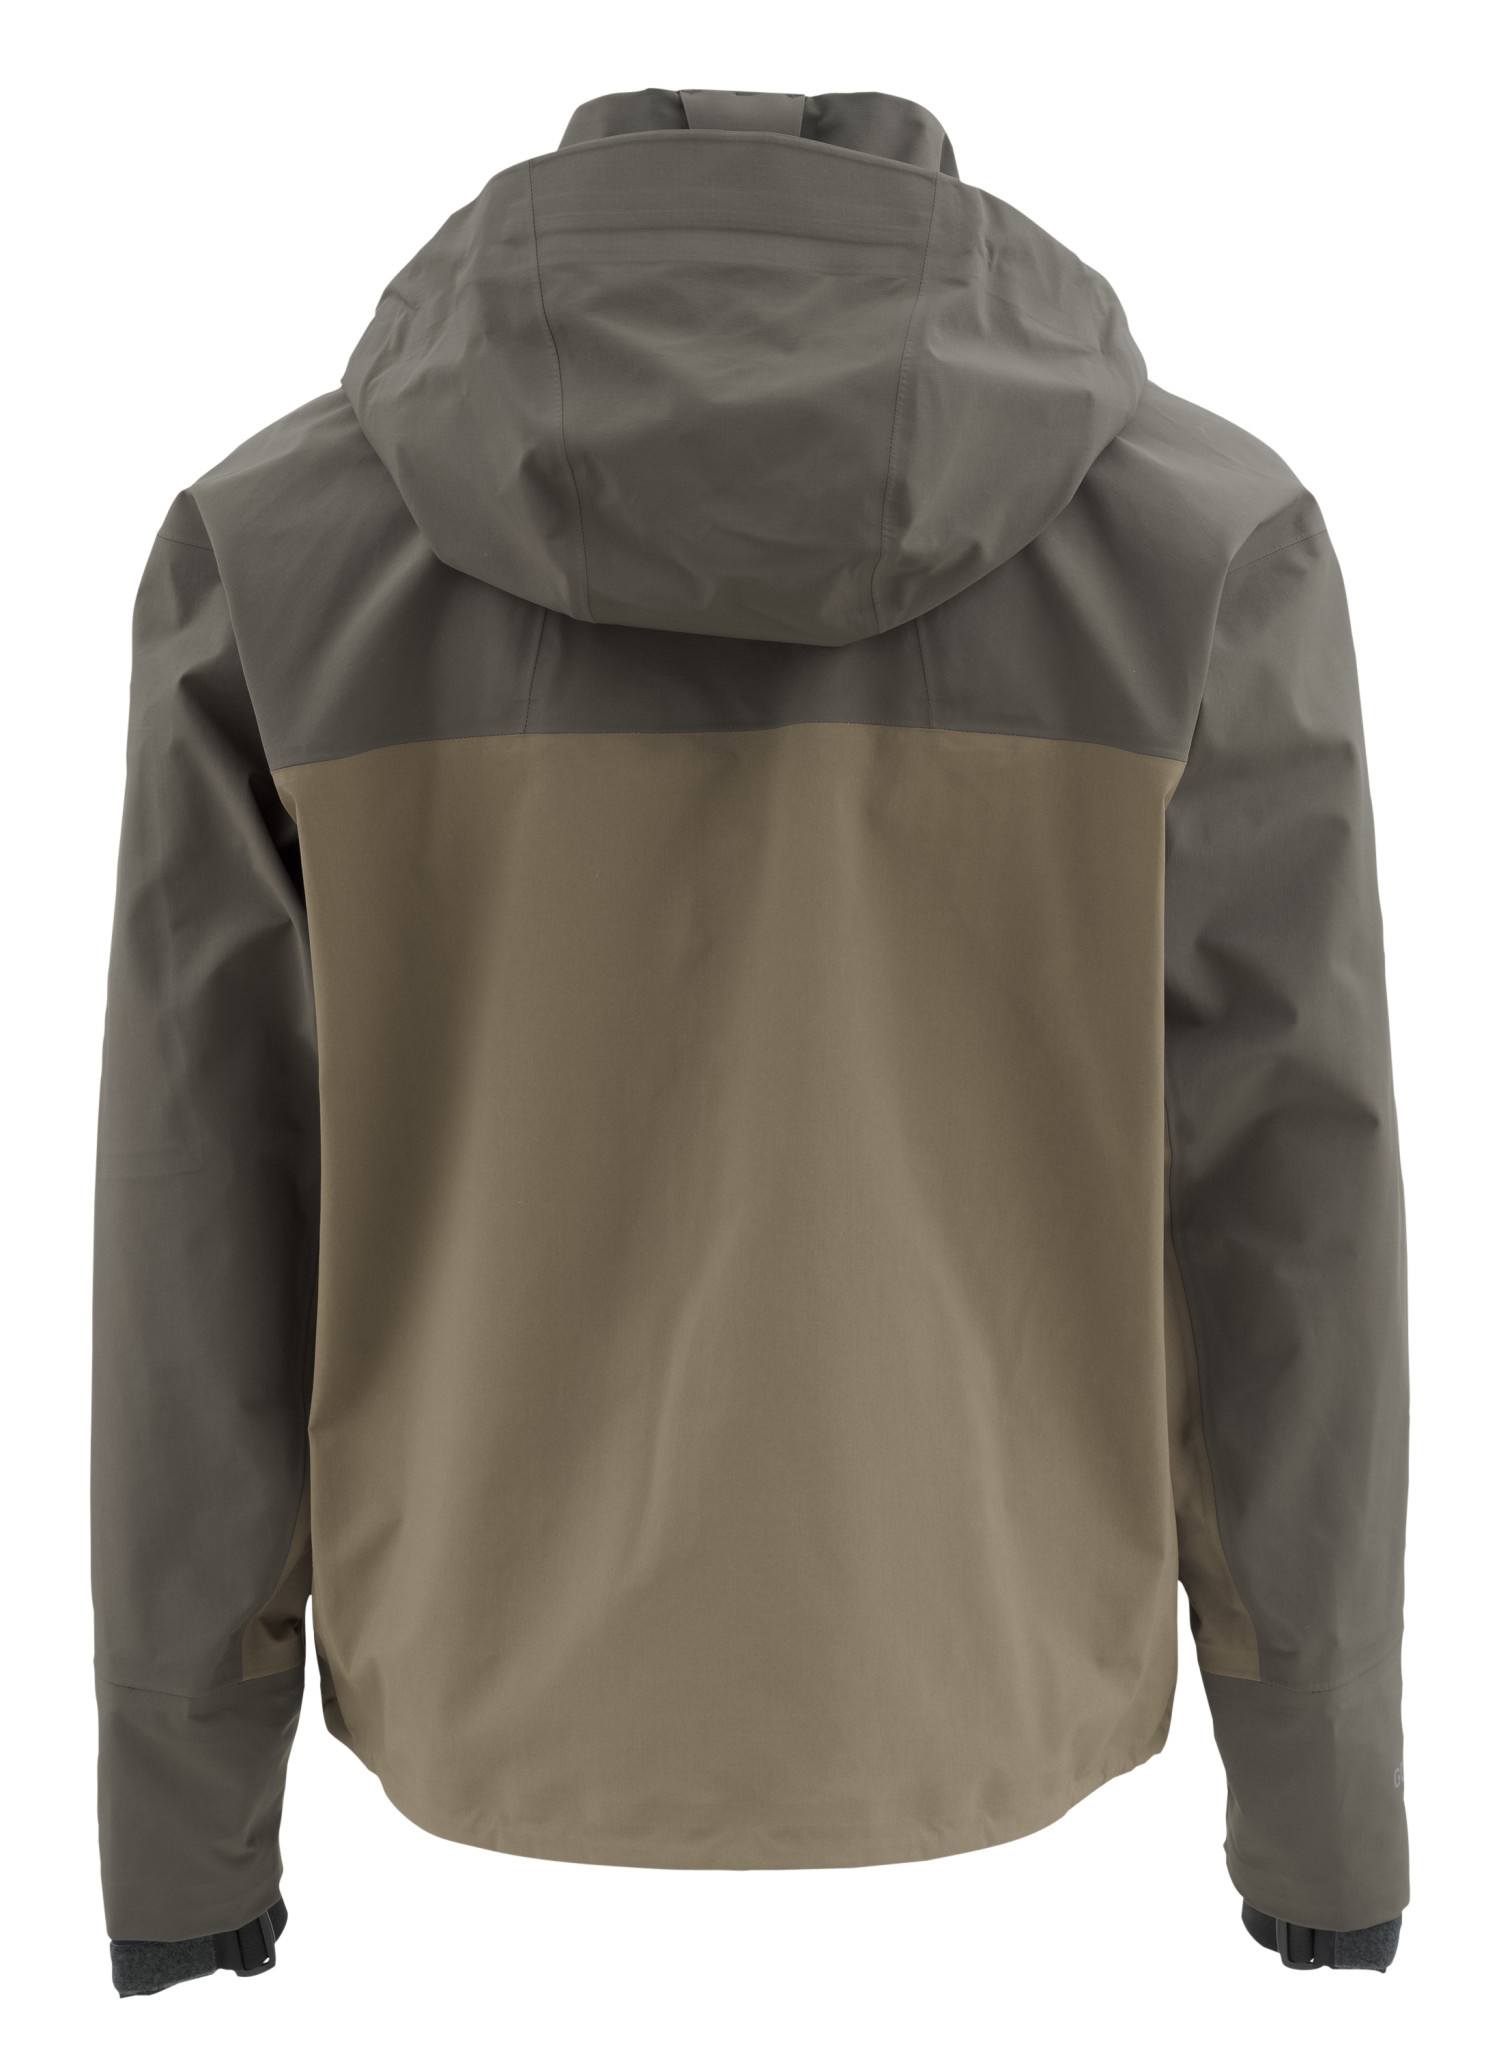 Simms Simms G3 Guide Tactical Jacket